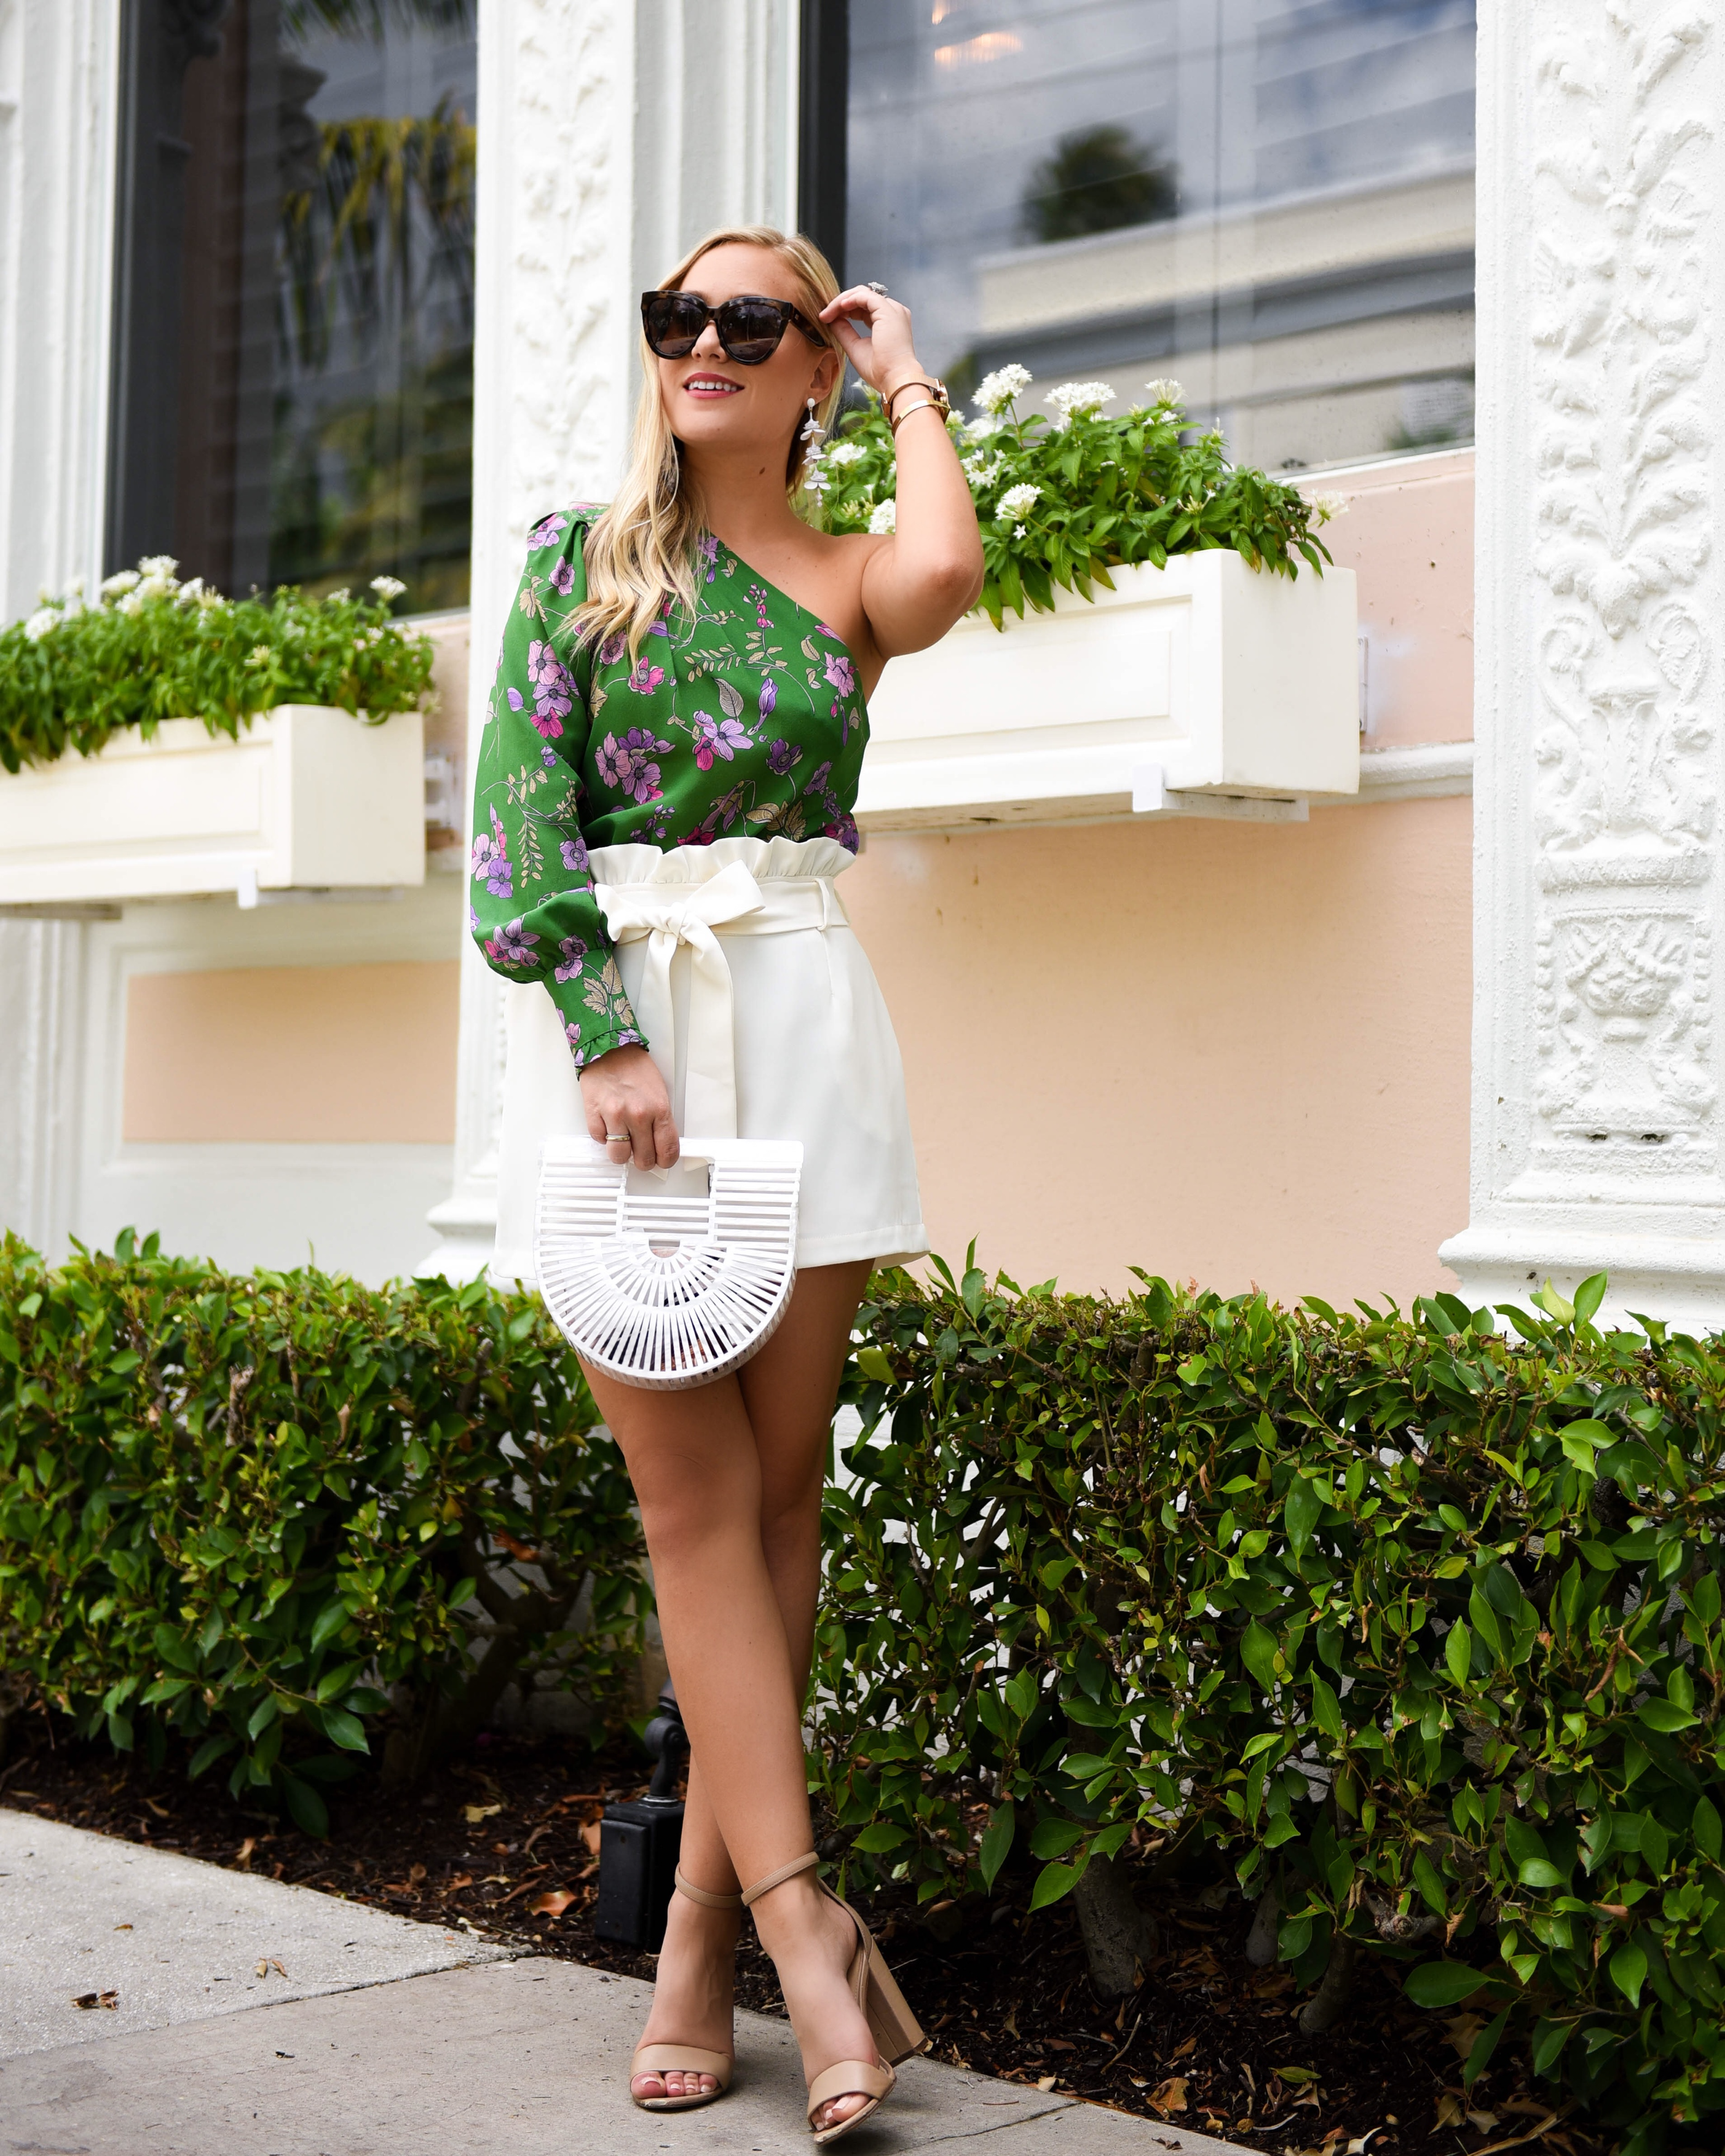 Shoshanna Top, Fossil Watch, Cult Gaia Bag, J Crew Earrings, Nordstrom, Nordstrom Shoes, Nordstrom Sam Edelman, Fossil Watch, Palm Beach, travel blogger